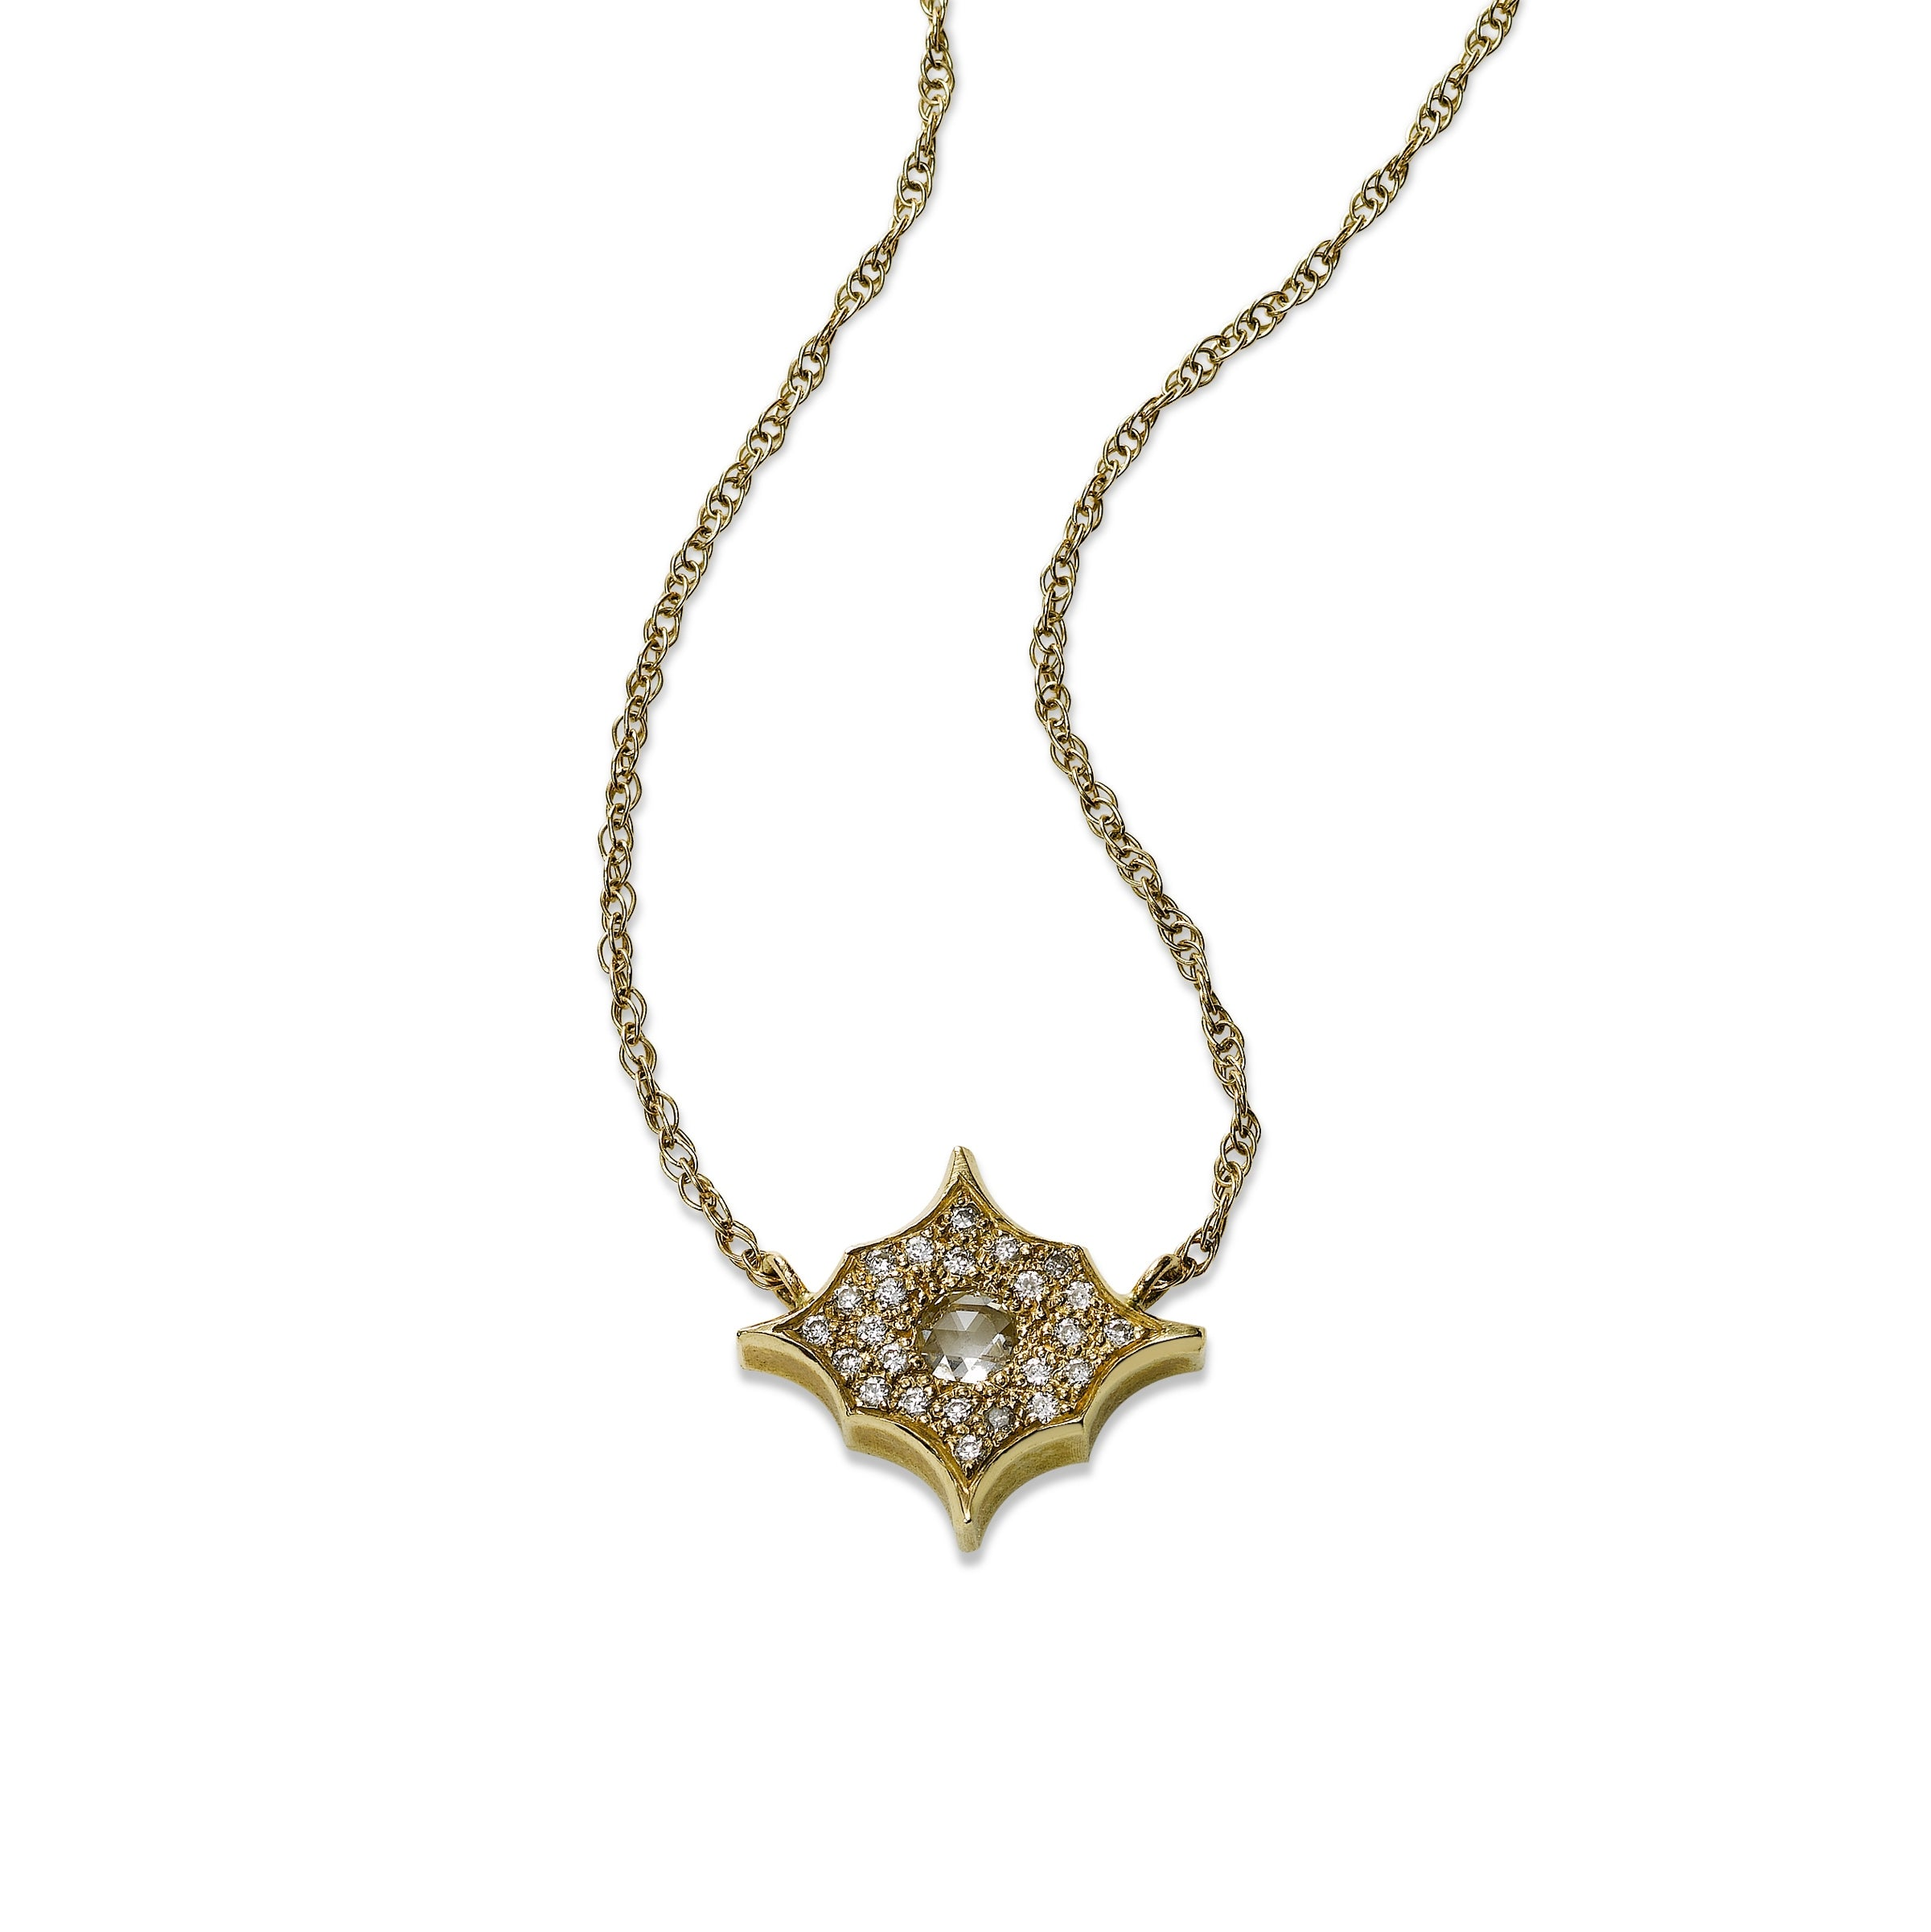 91bbc3250e461 Celestial Design Diamond Necklace, by Just Jules, 14K Yellow Gold